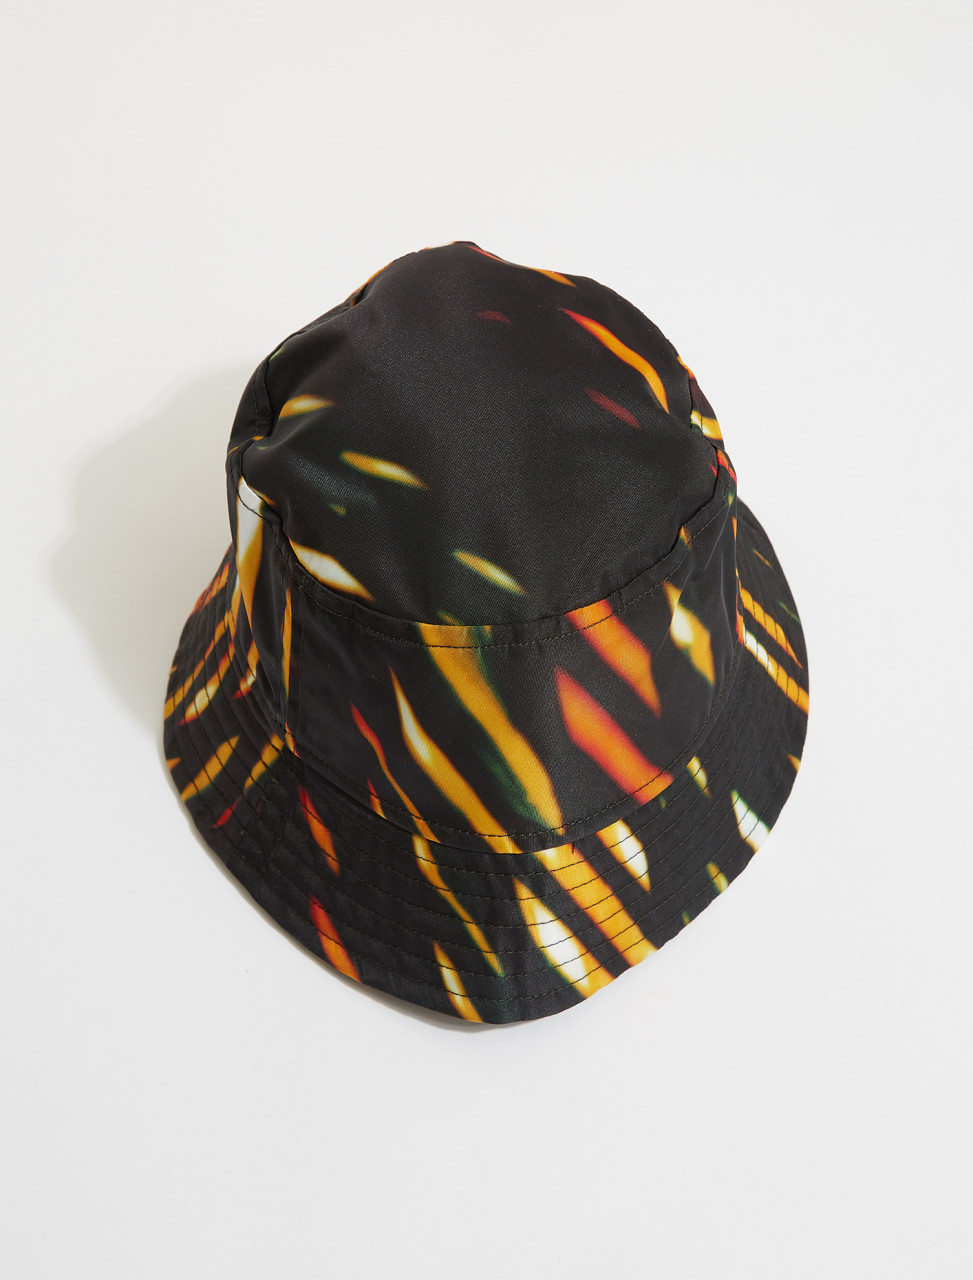 211-29503-2006-977 DRIES VAN NOTEN GILLIAN LIGHT PANELS PRINT BUCKET HAT IN BLACK